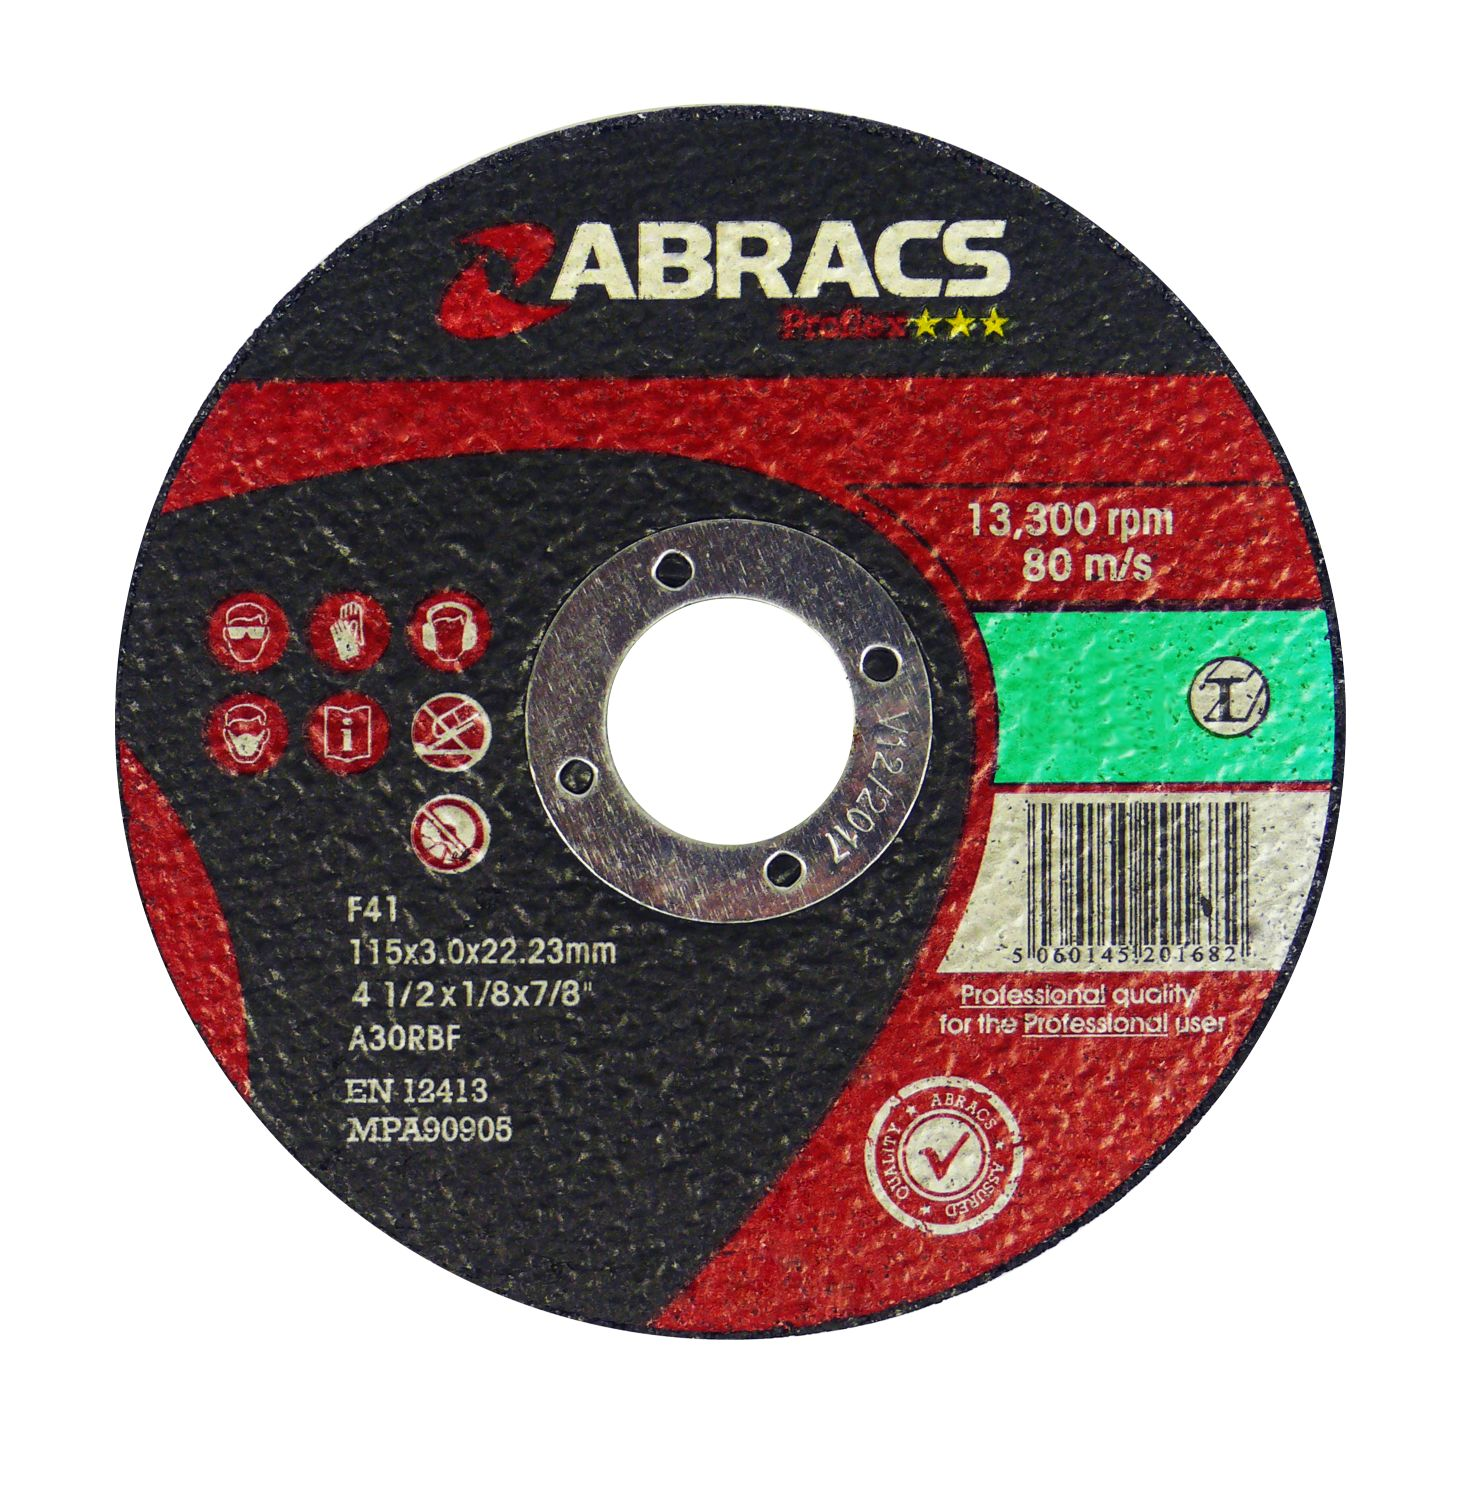 STONE CUTTING DISC - FLAT 300 X 3 X 20MM